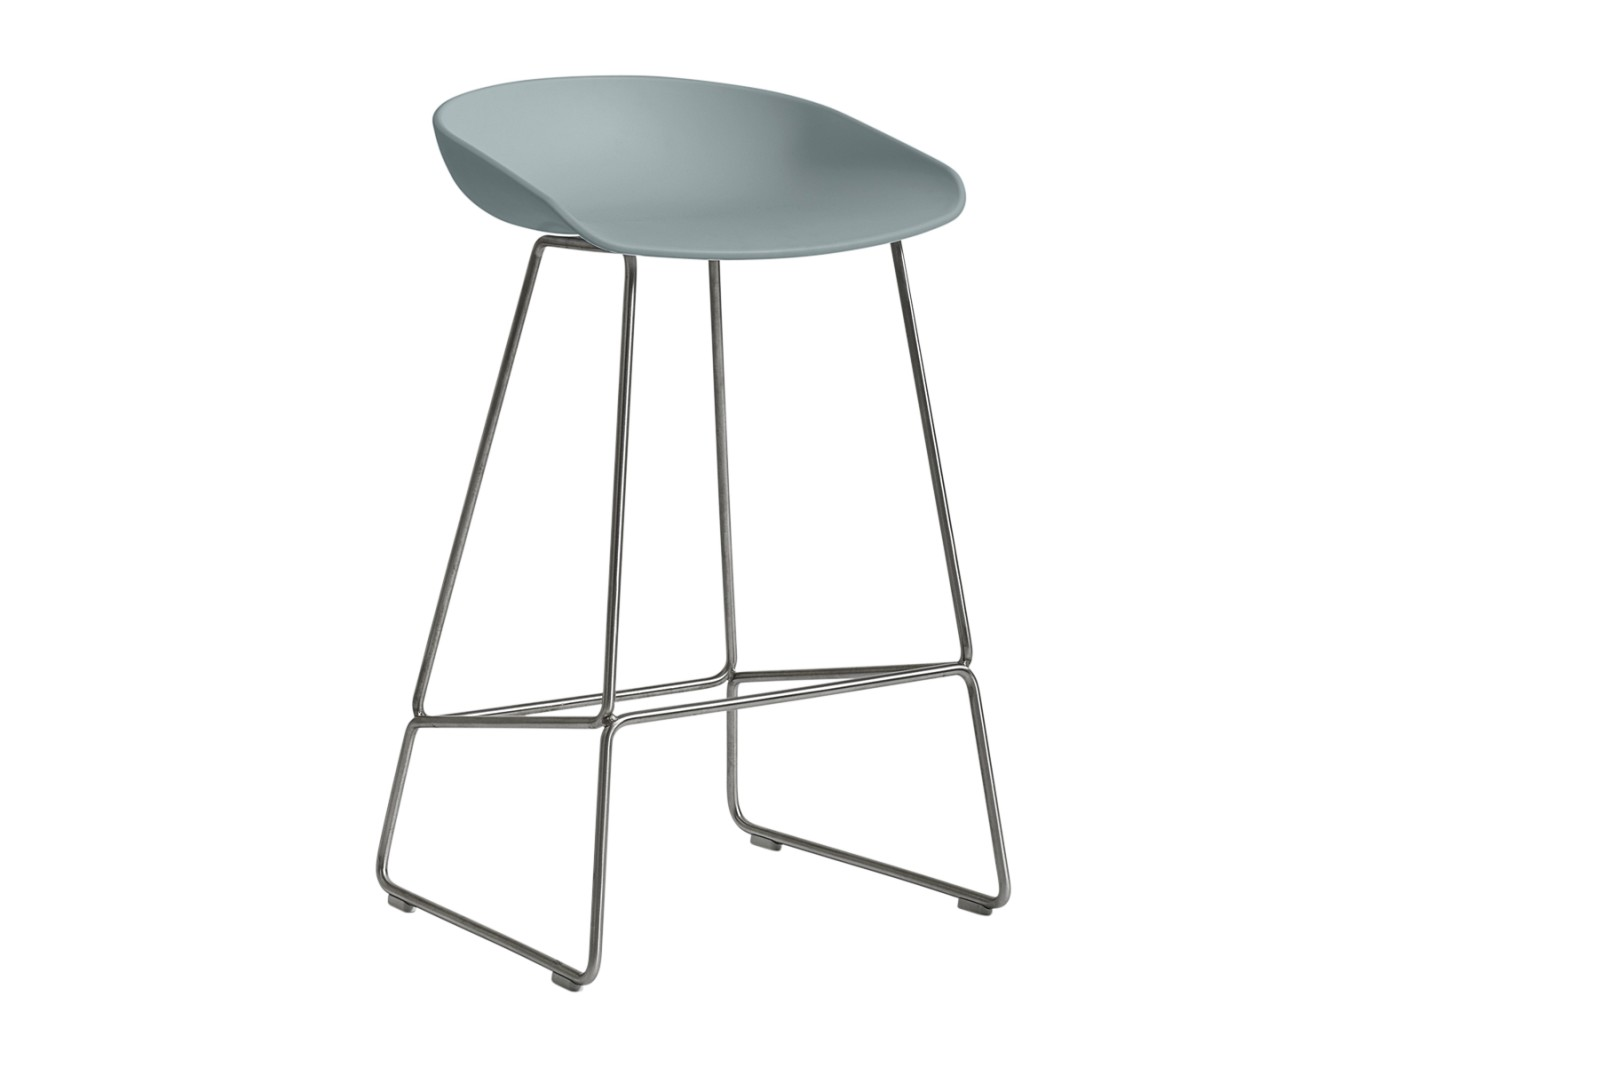 About A Stool AAS38 Dusty Blue Seat and Stainless Steel Base, Low